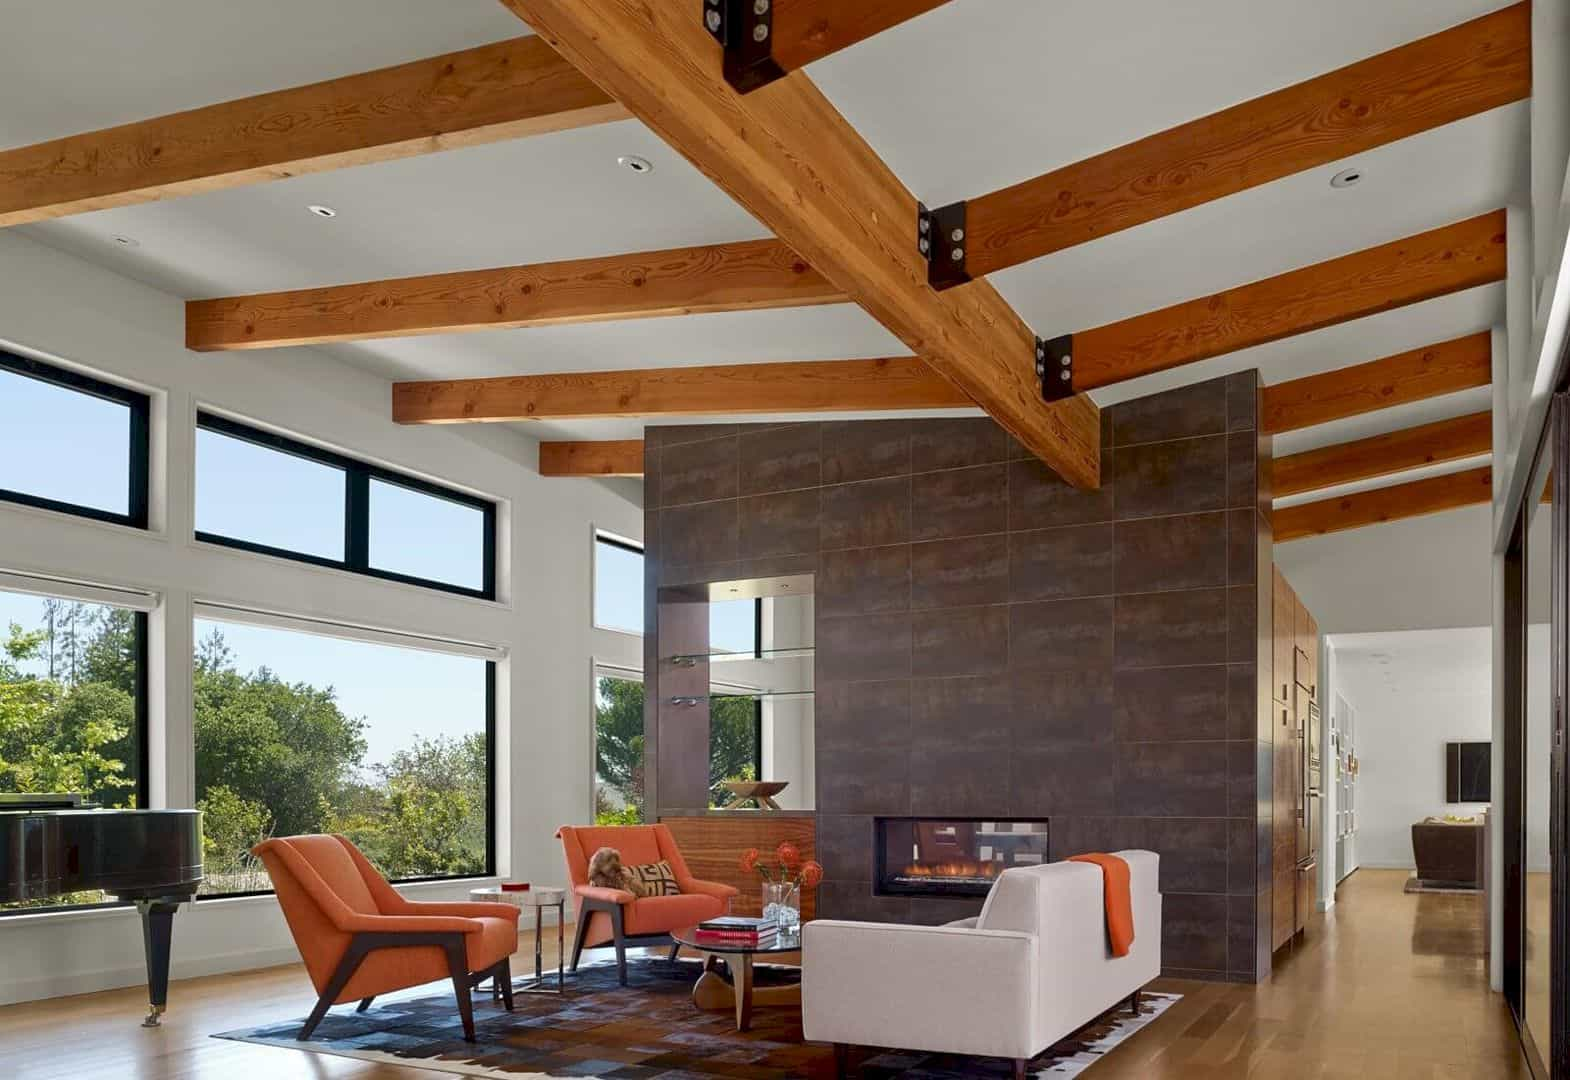 Golden Oak Residence A Light Filled House That Takes Advantage Of Its Bucolic Site 5